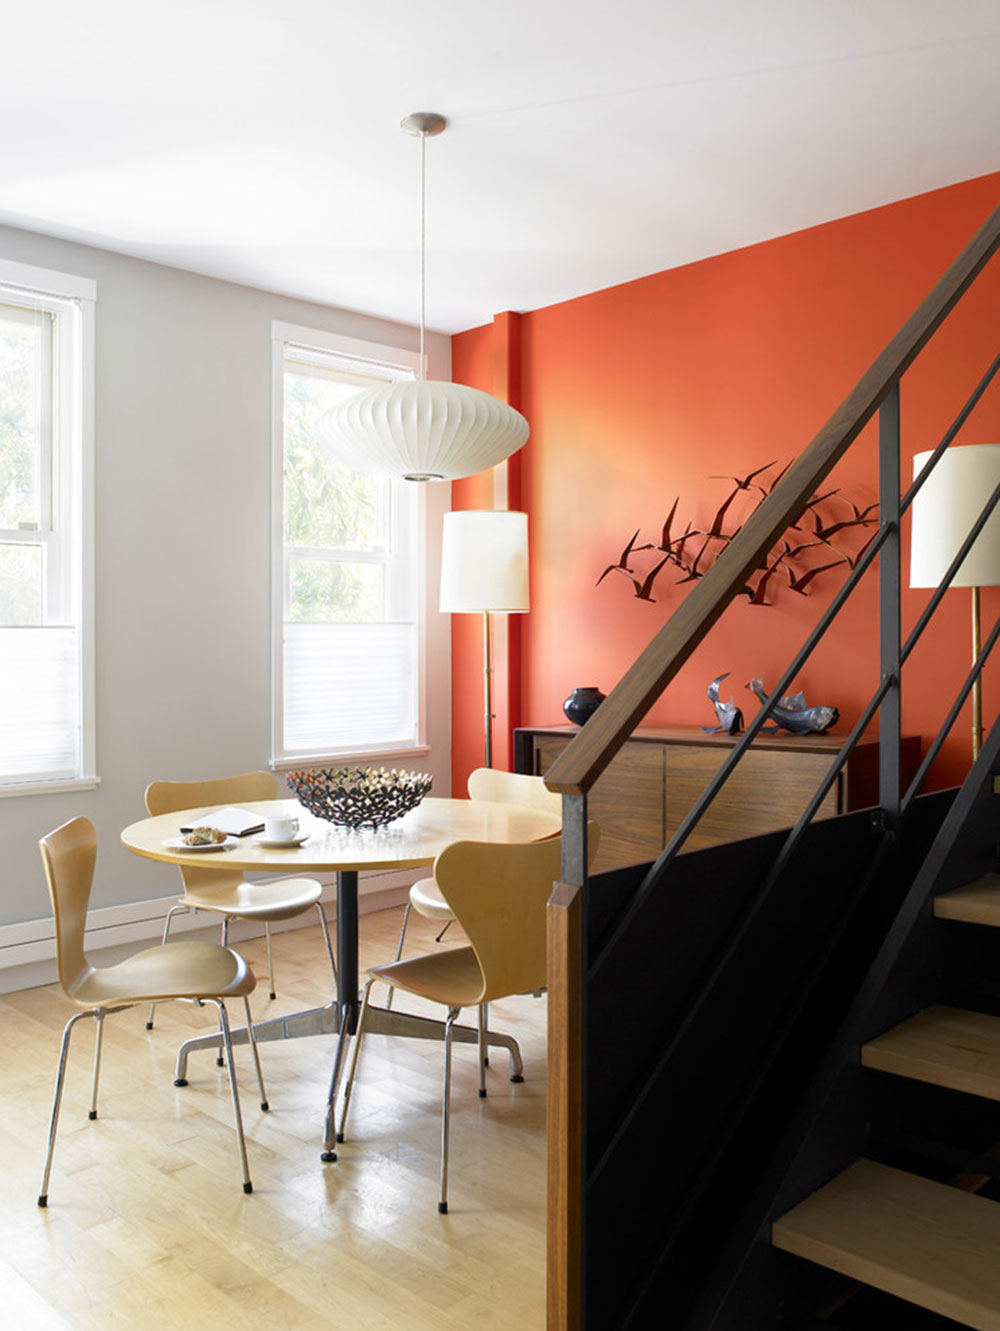 Adding Accents to a Neutral Interior with Color16 Adding Accents to a Neutral Interior with Color